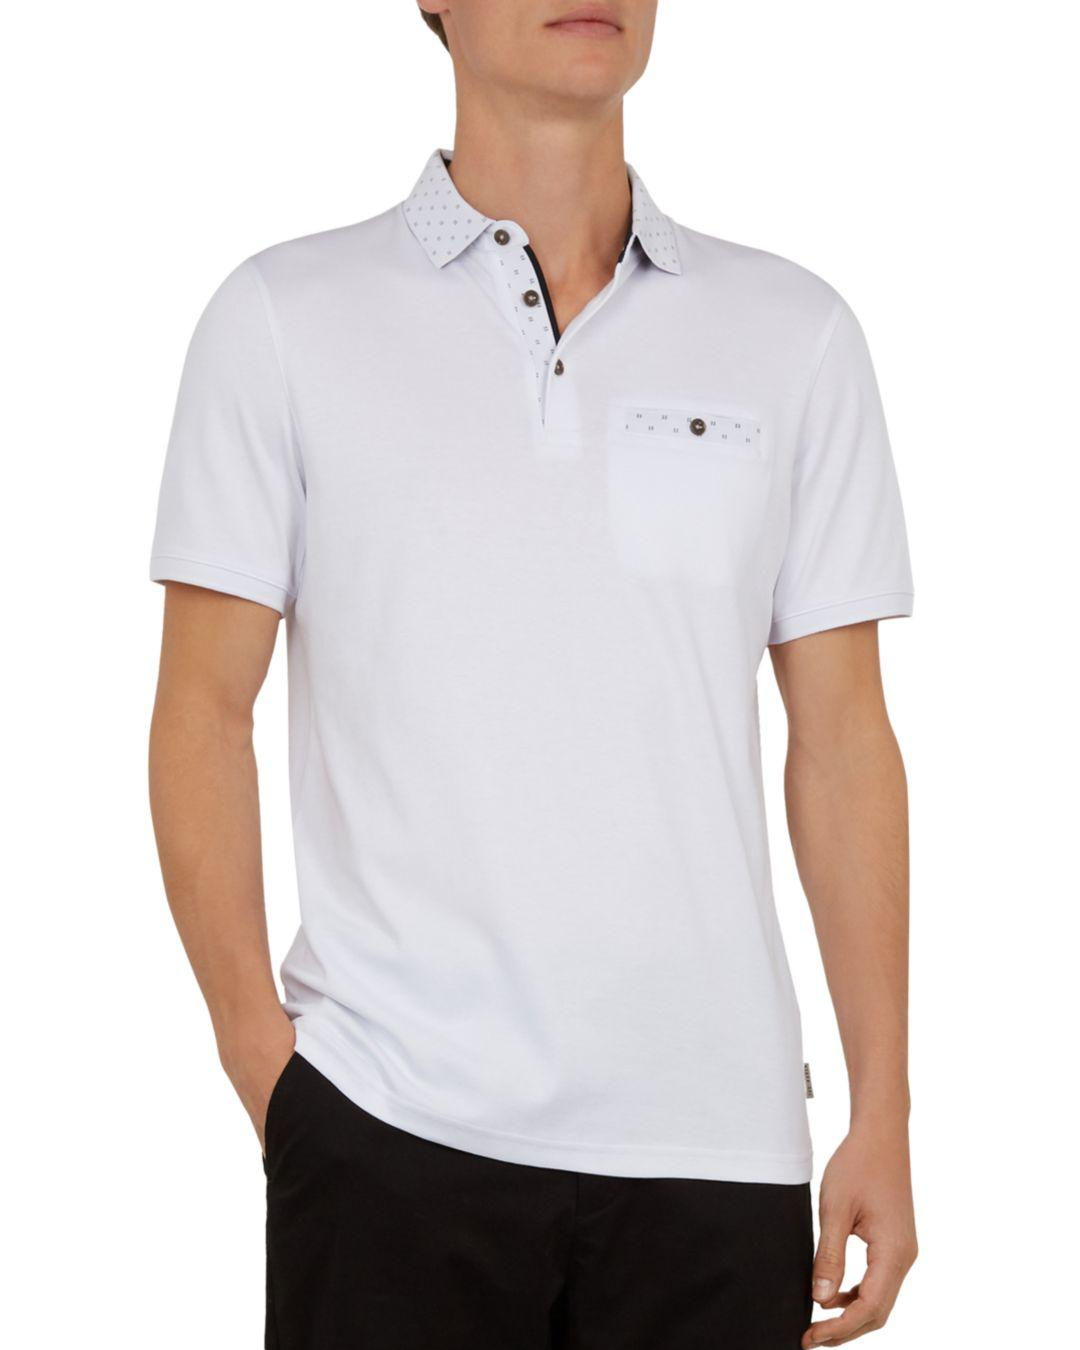 390fc62a Lyst - Ted Baker Critter Flat Knit Regular Fit Polo Shirt in White ...